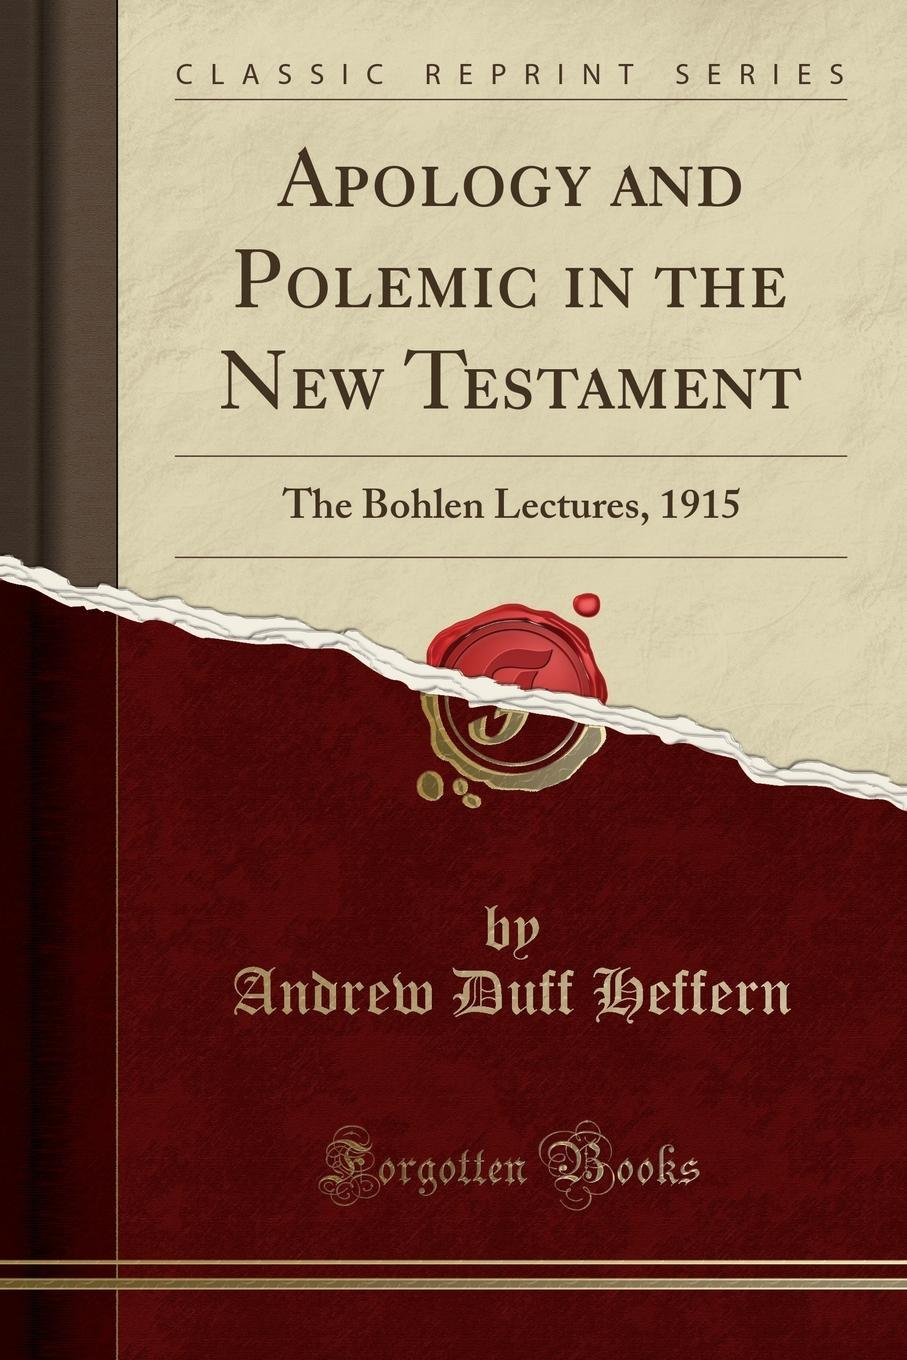 Download Apology and Polemic in the New Testament: The Bohlen Lectures, 1915 (Classic Reprint) ebook